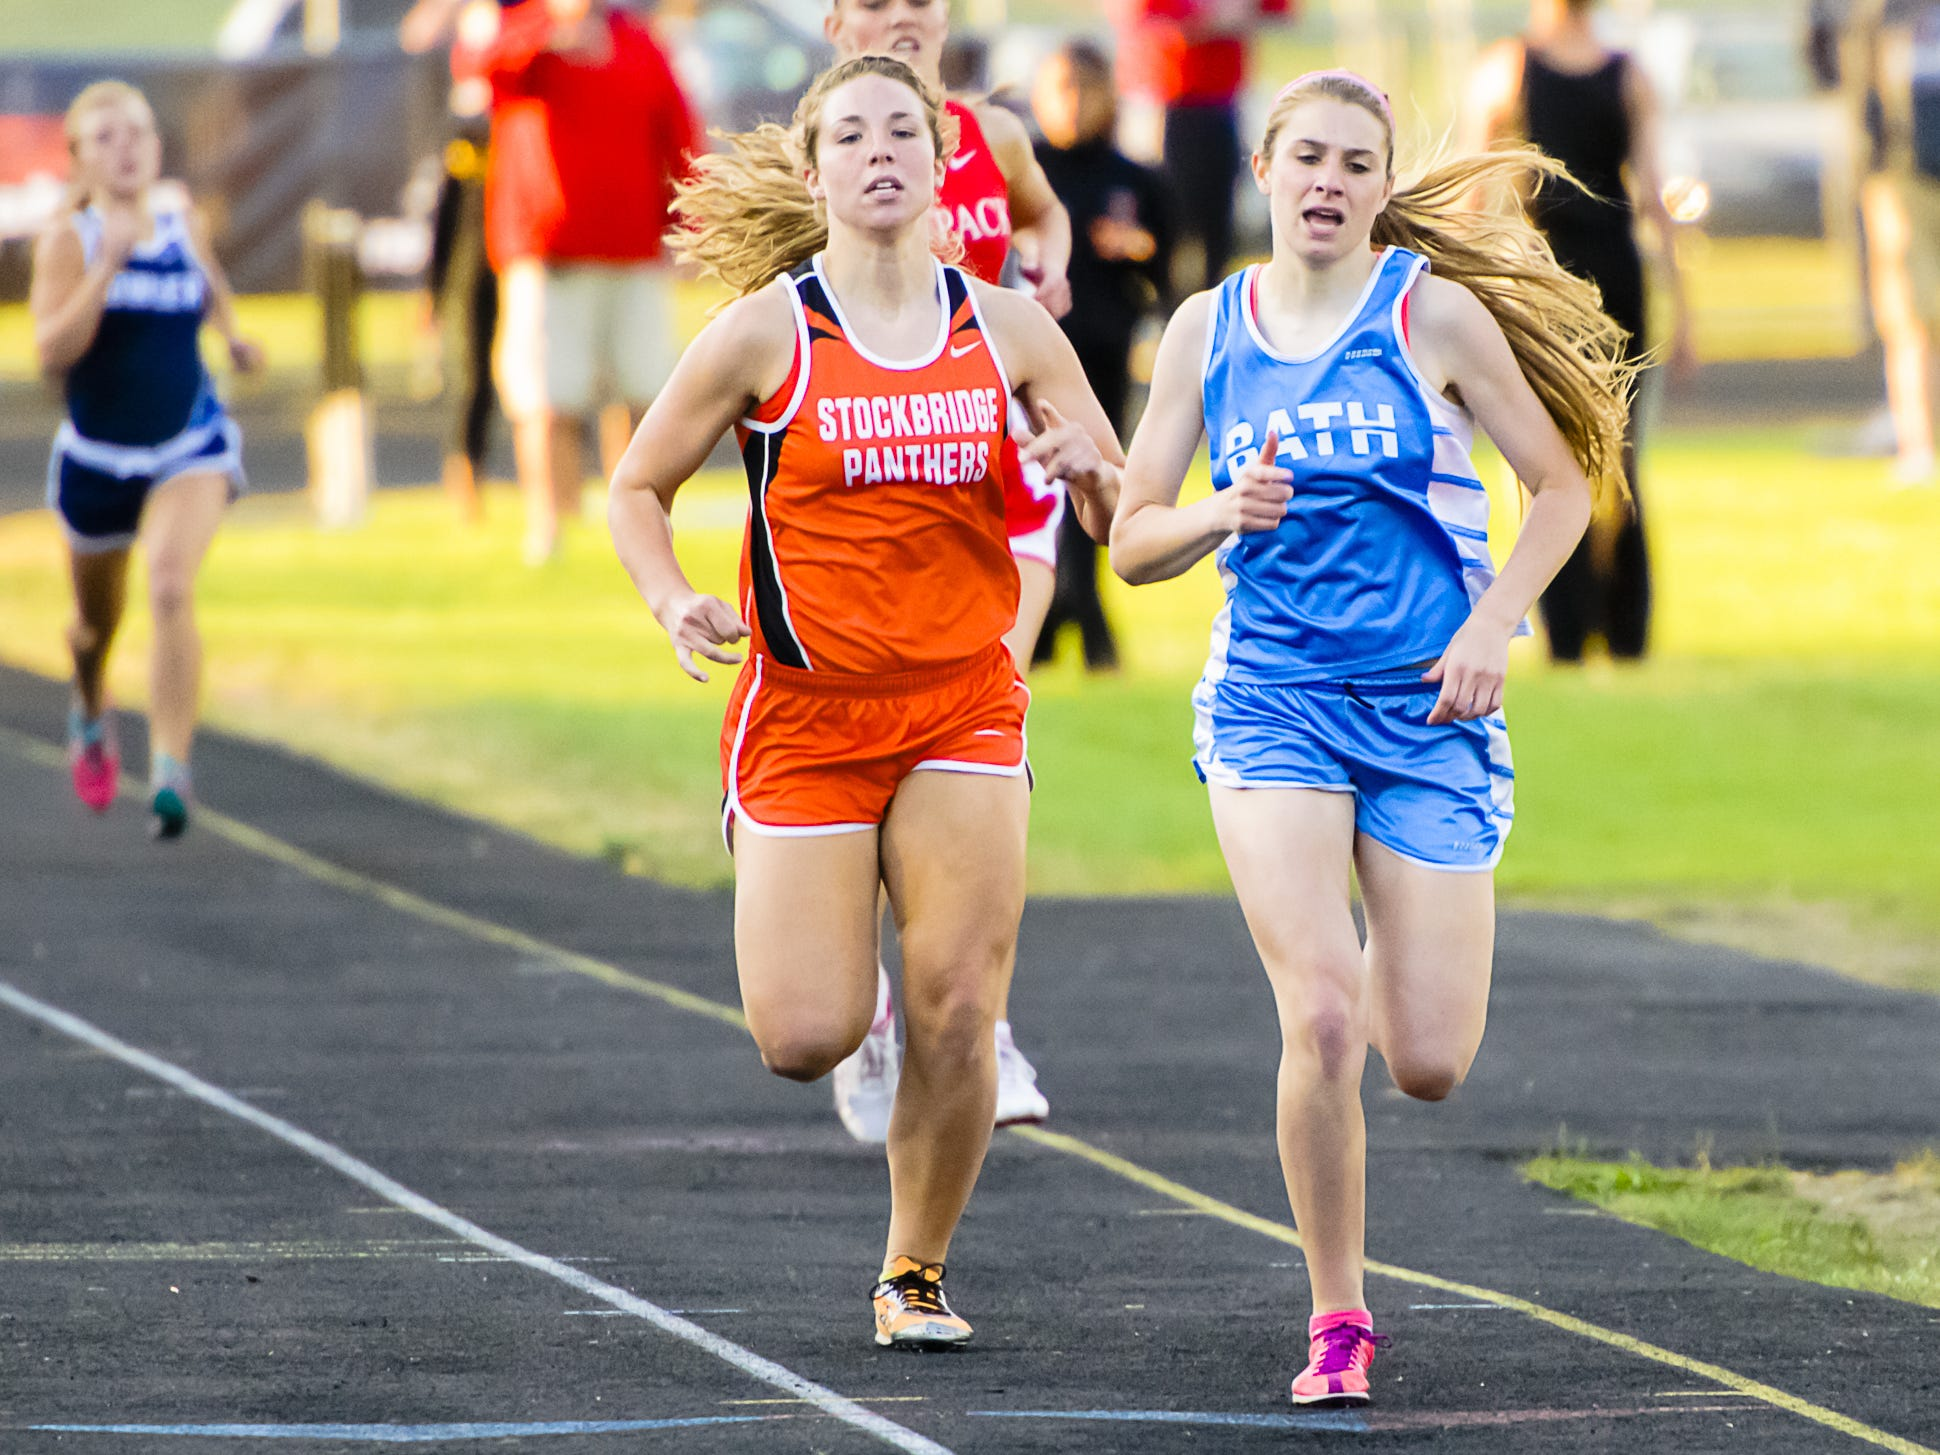 Annie Fanta (right) of Bath looks to capture her first career Division 3 state title in her senior year.